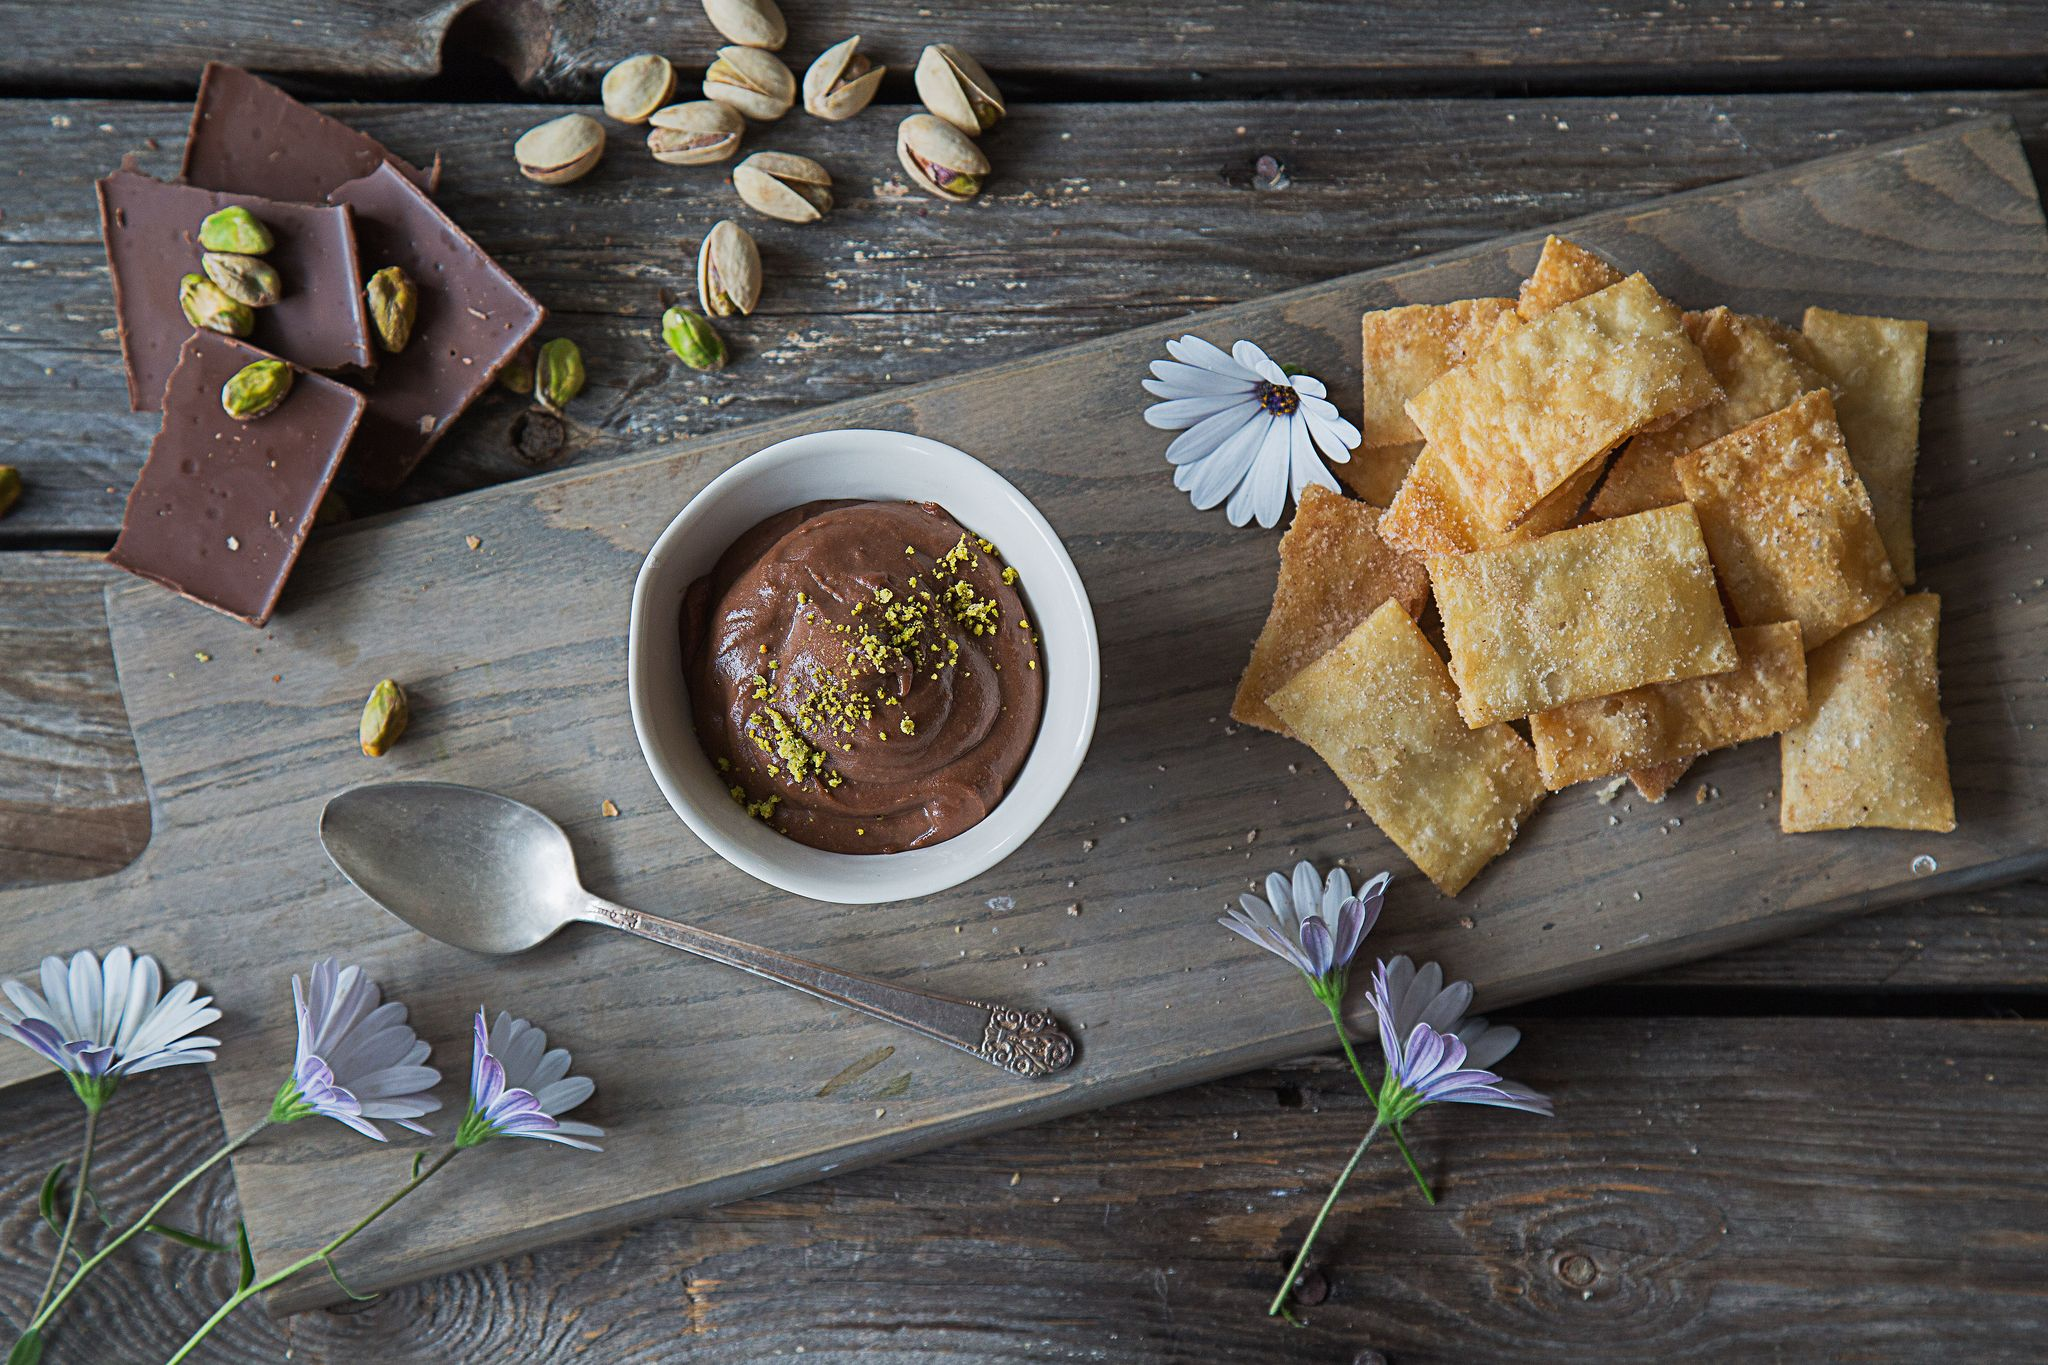 Chef Loay Alhindi's Chocolate Hummus